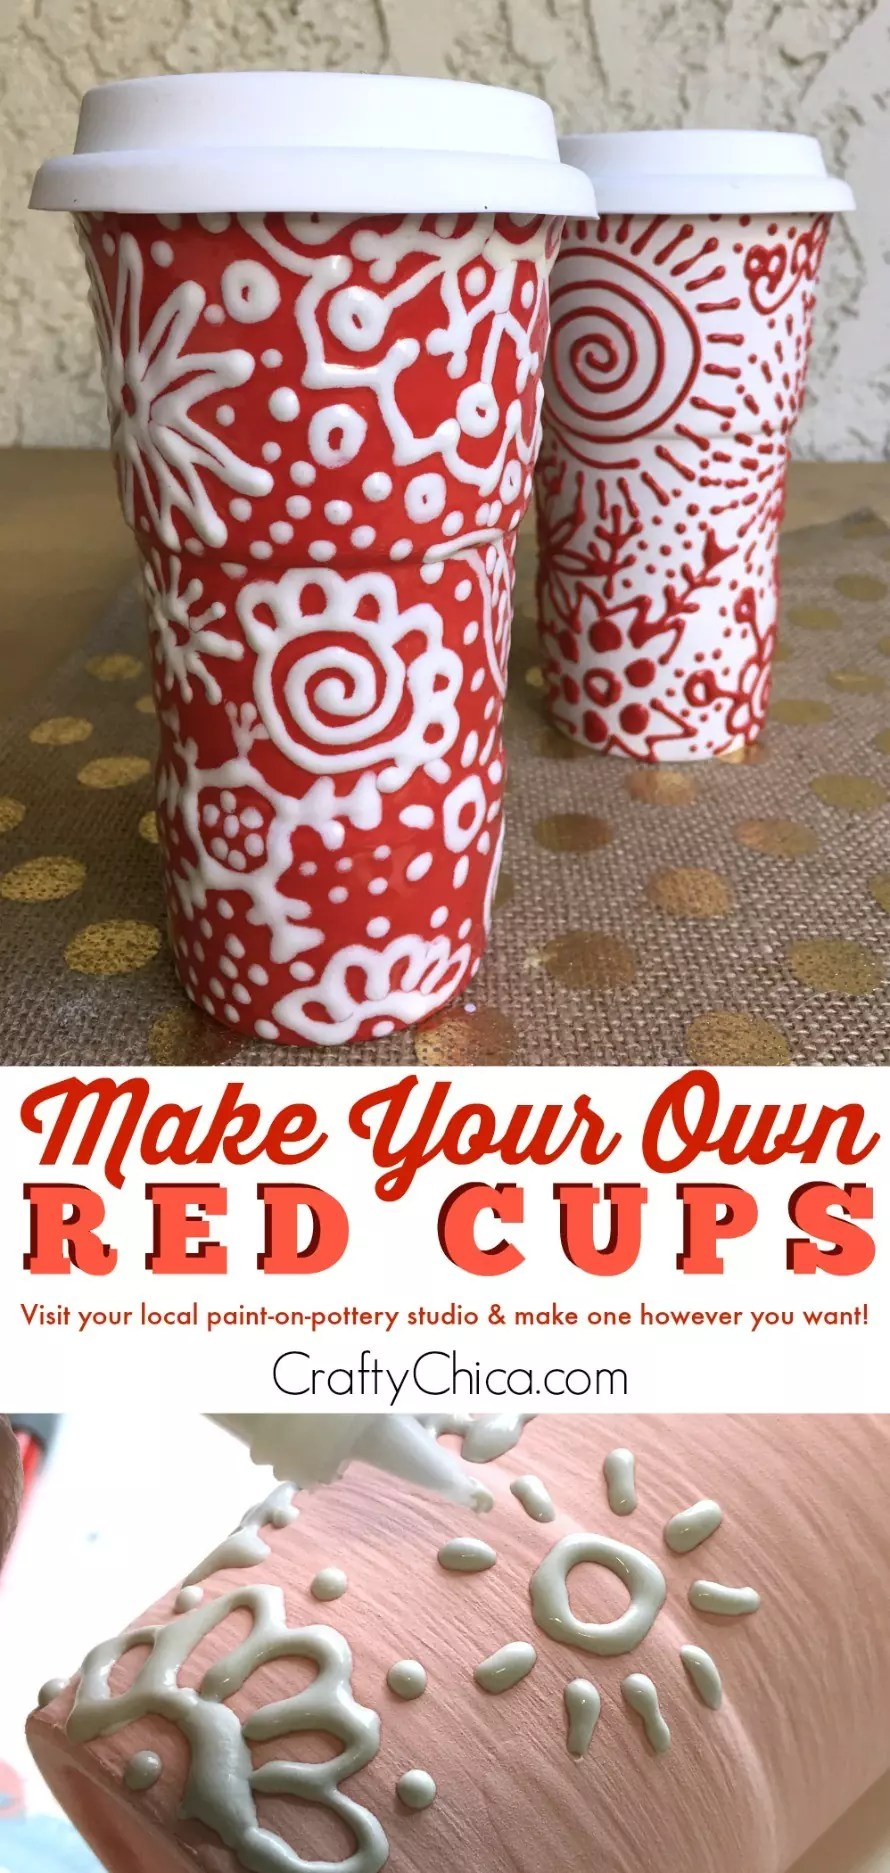 Make your own red cup CraftyChica.com